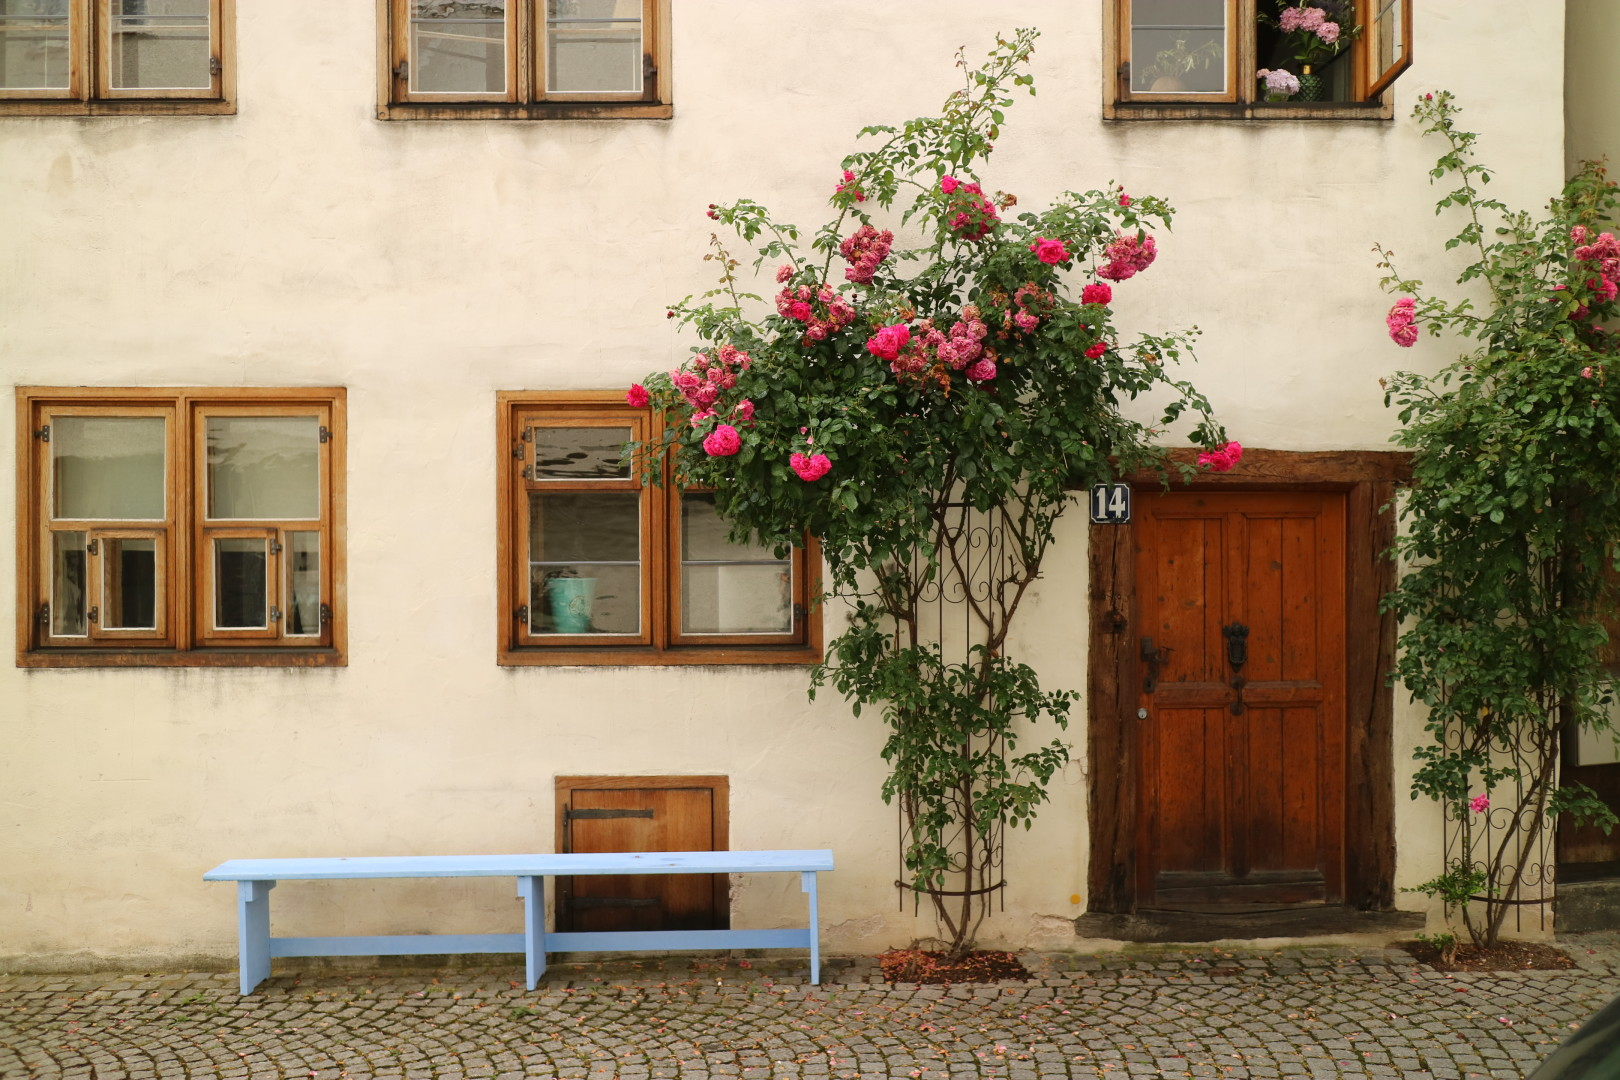 an old house with flowers and a bench in front of it